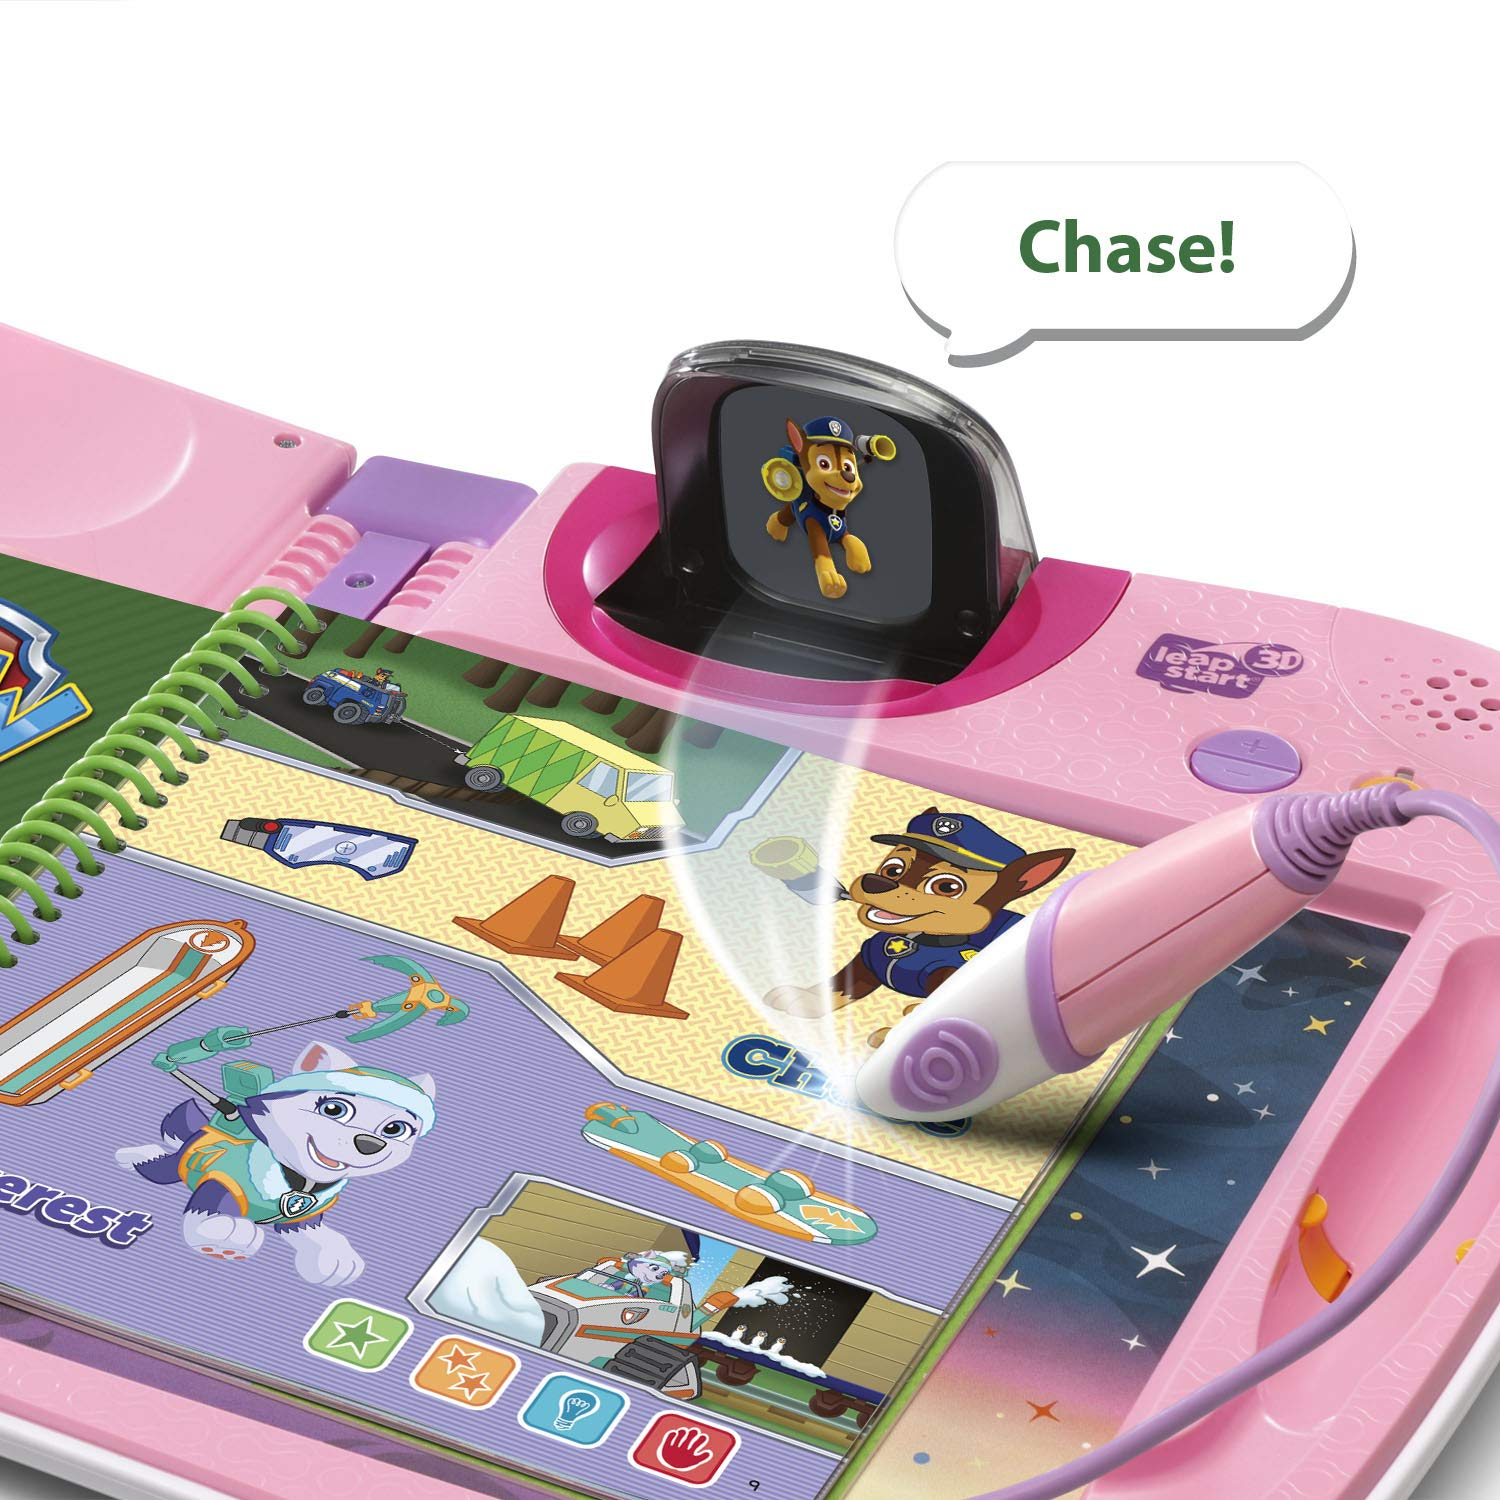 LeapFrog LeapStart 3D Interactive Learning System Amazon Exclusive, Violet by LeapFrog (Image #3)